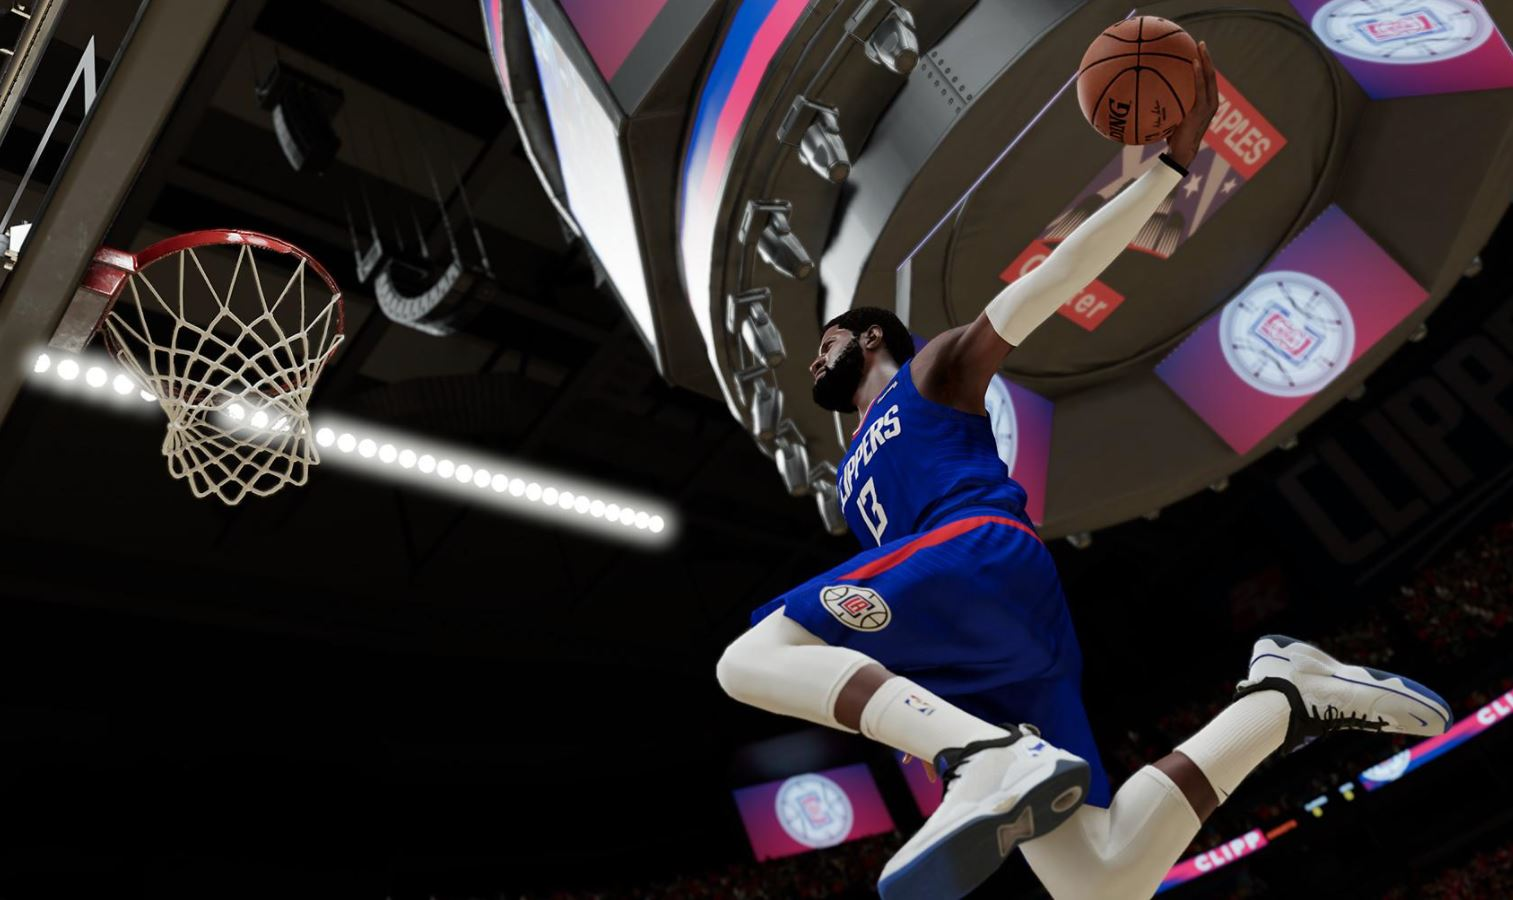 nba-2k21-players-can-grab-the-newly-announced-pg5-sneakers-in-game-on-ps5-and-ps4